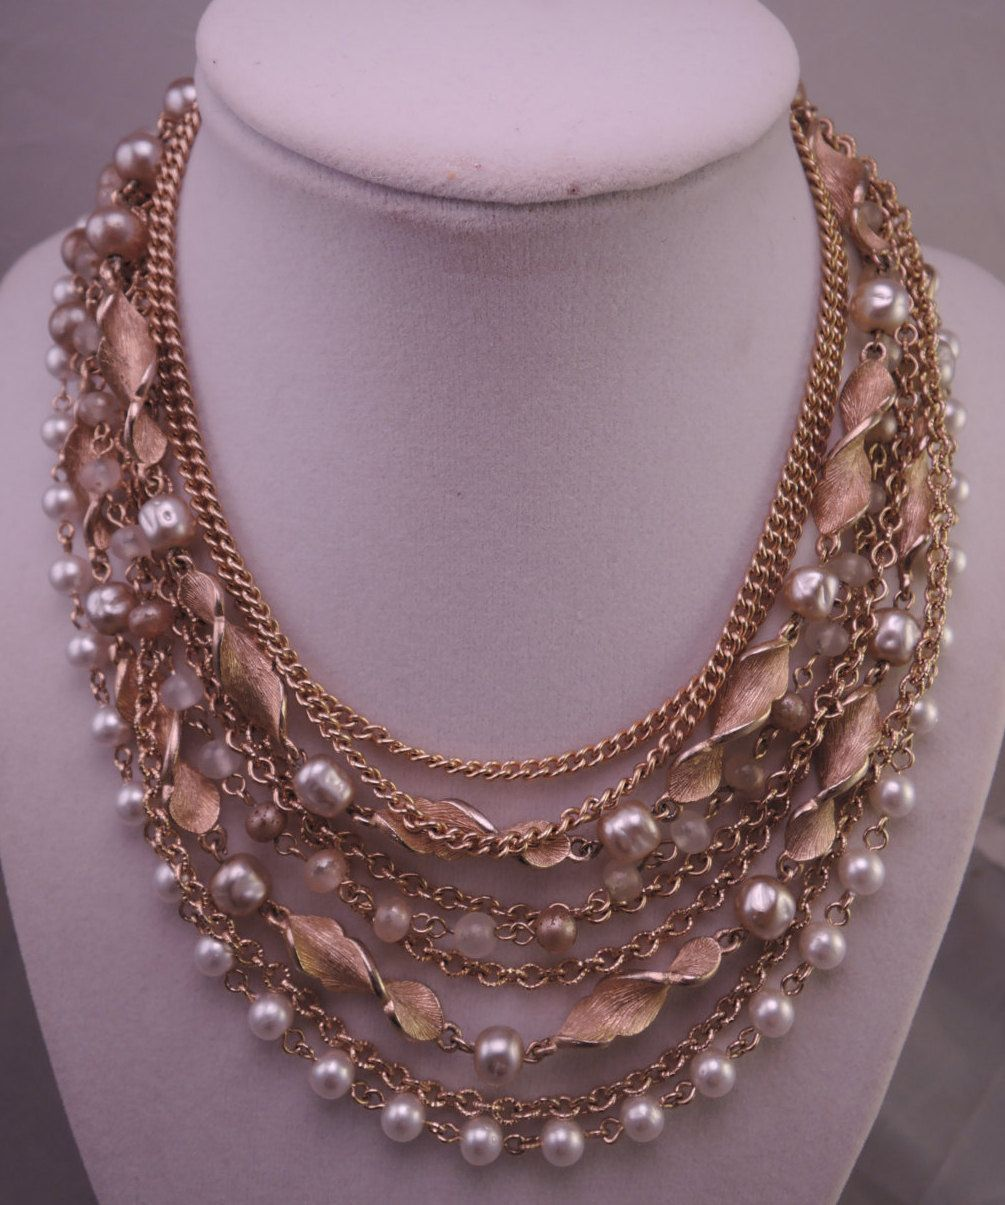 9 Strand Signed Kramer Gold Tone and Faux Pearl Necklace 1950-60s by thejeweledbear on Etsy